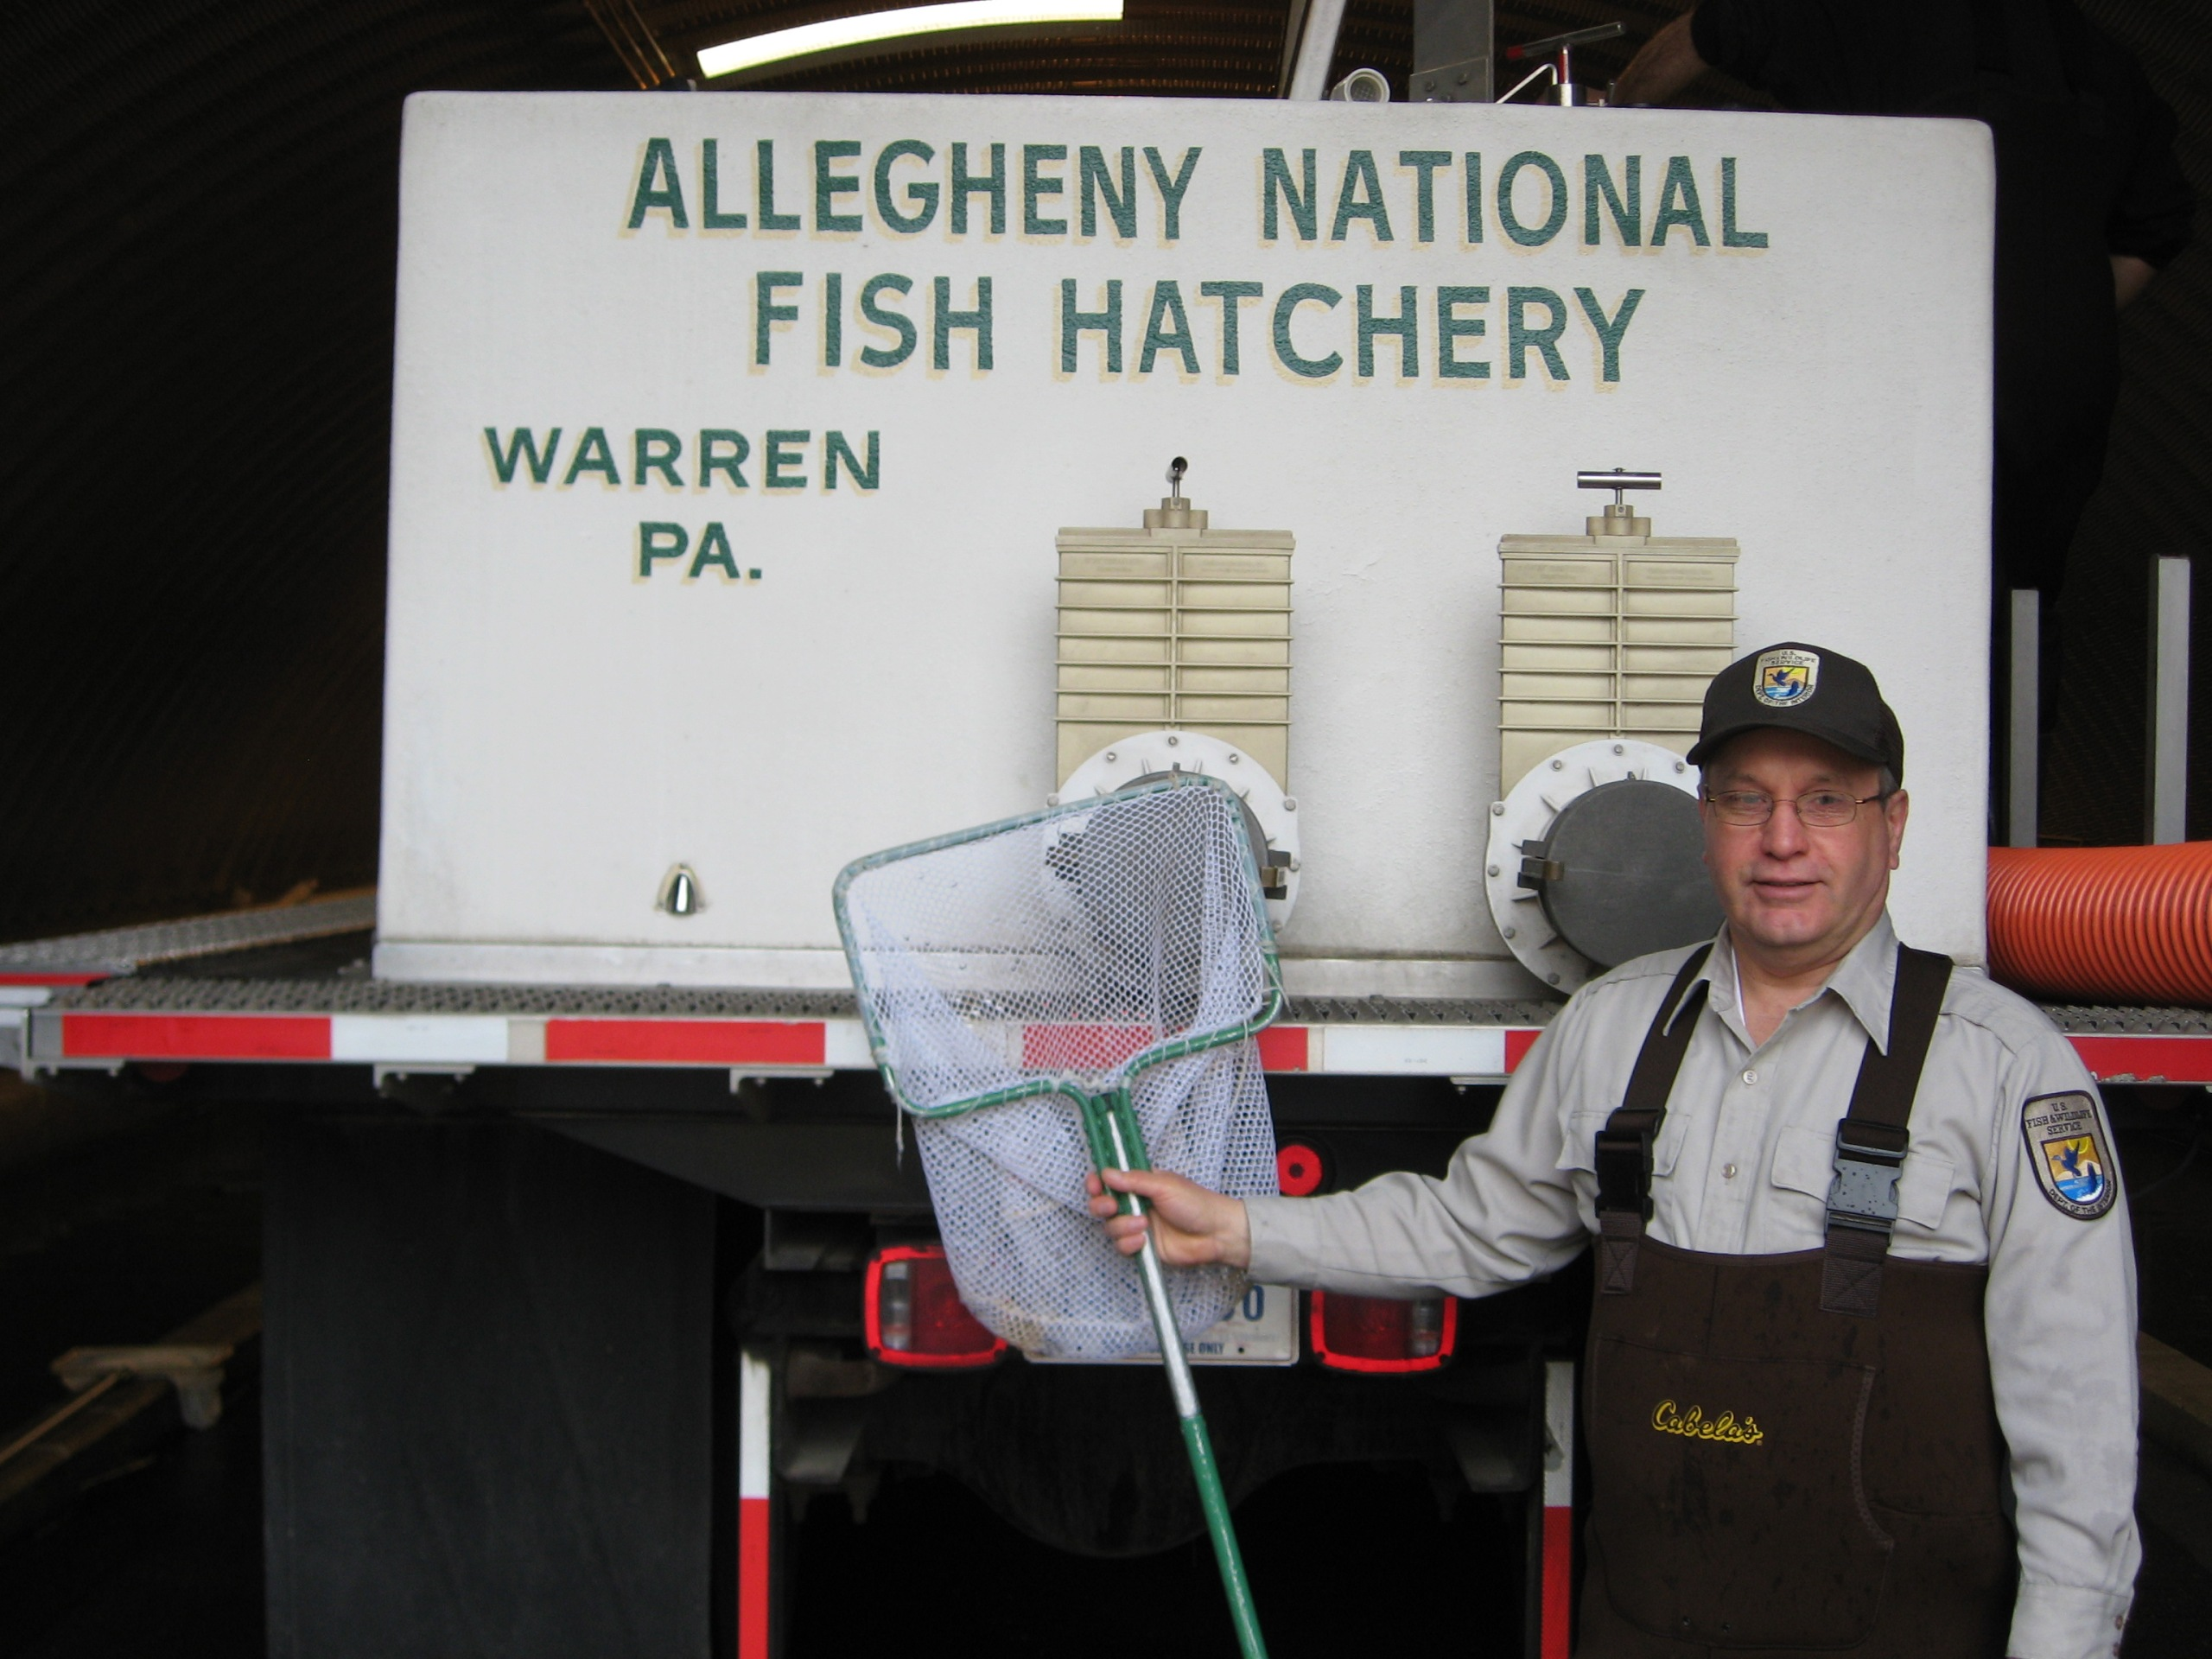 A man stands with waders and a net in front of an Allegheny National Fish Hatchery fish truck